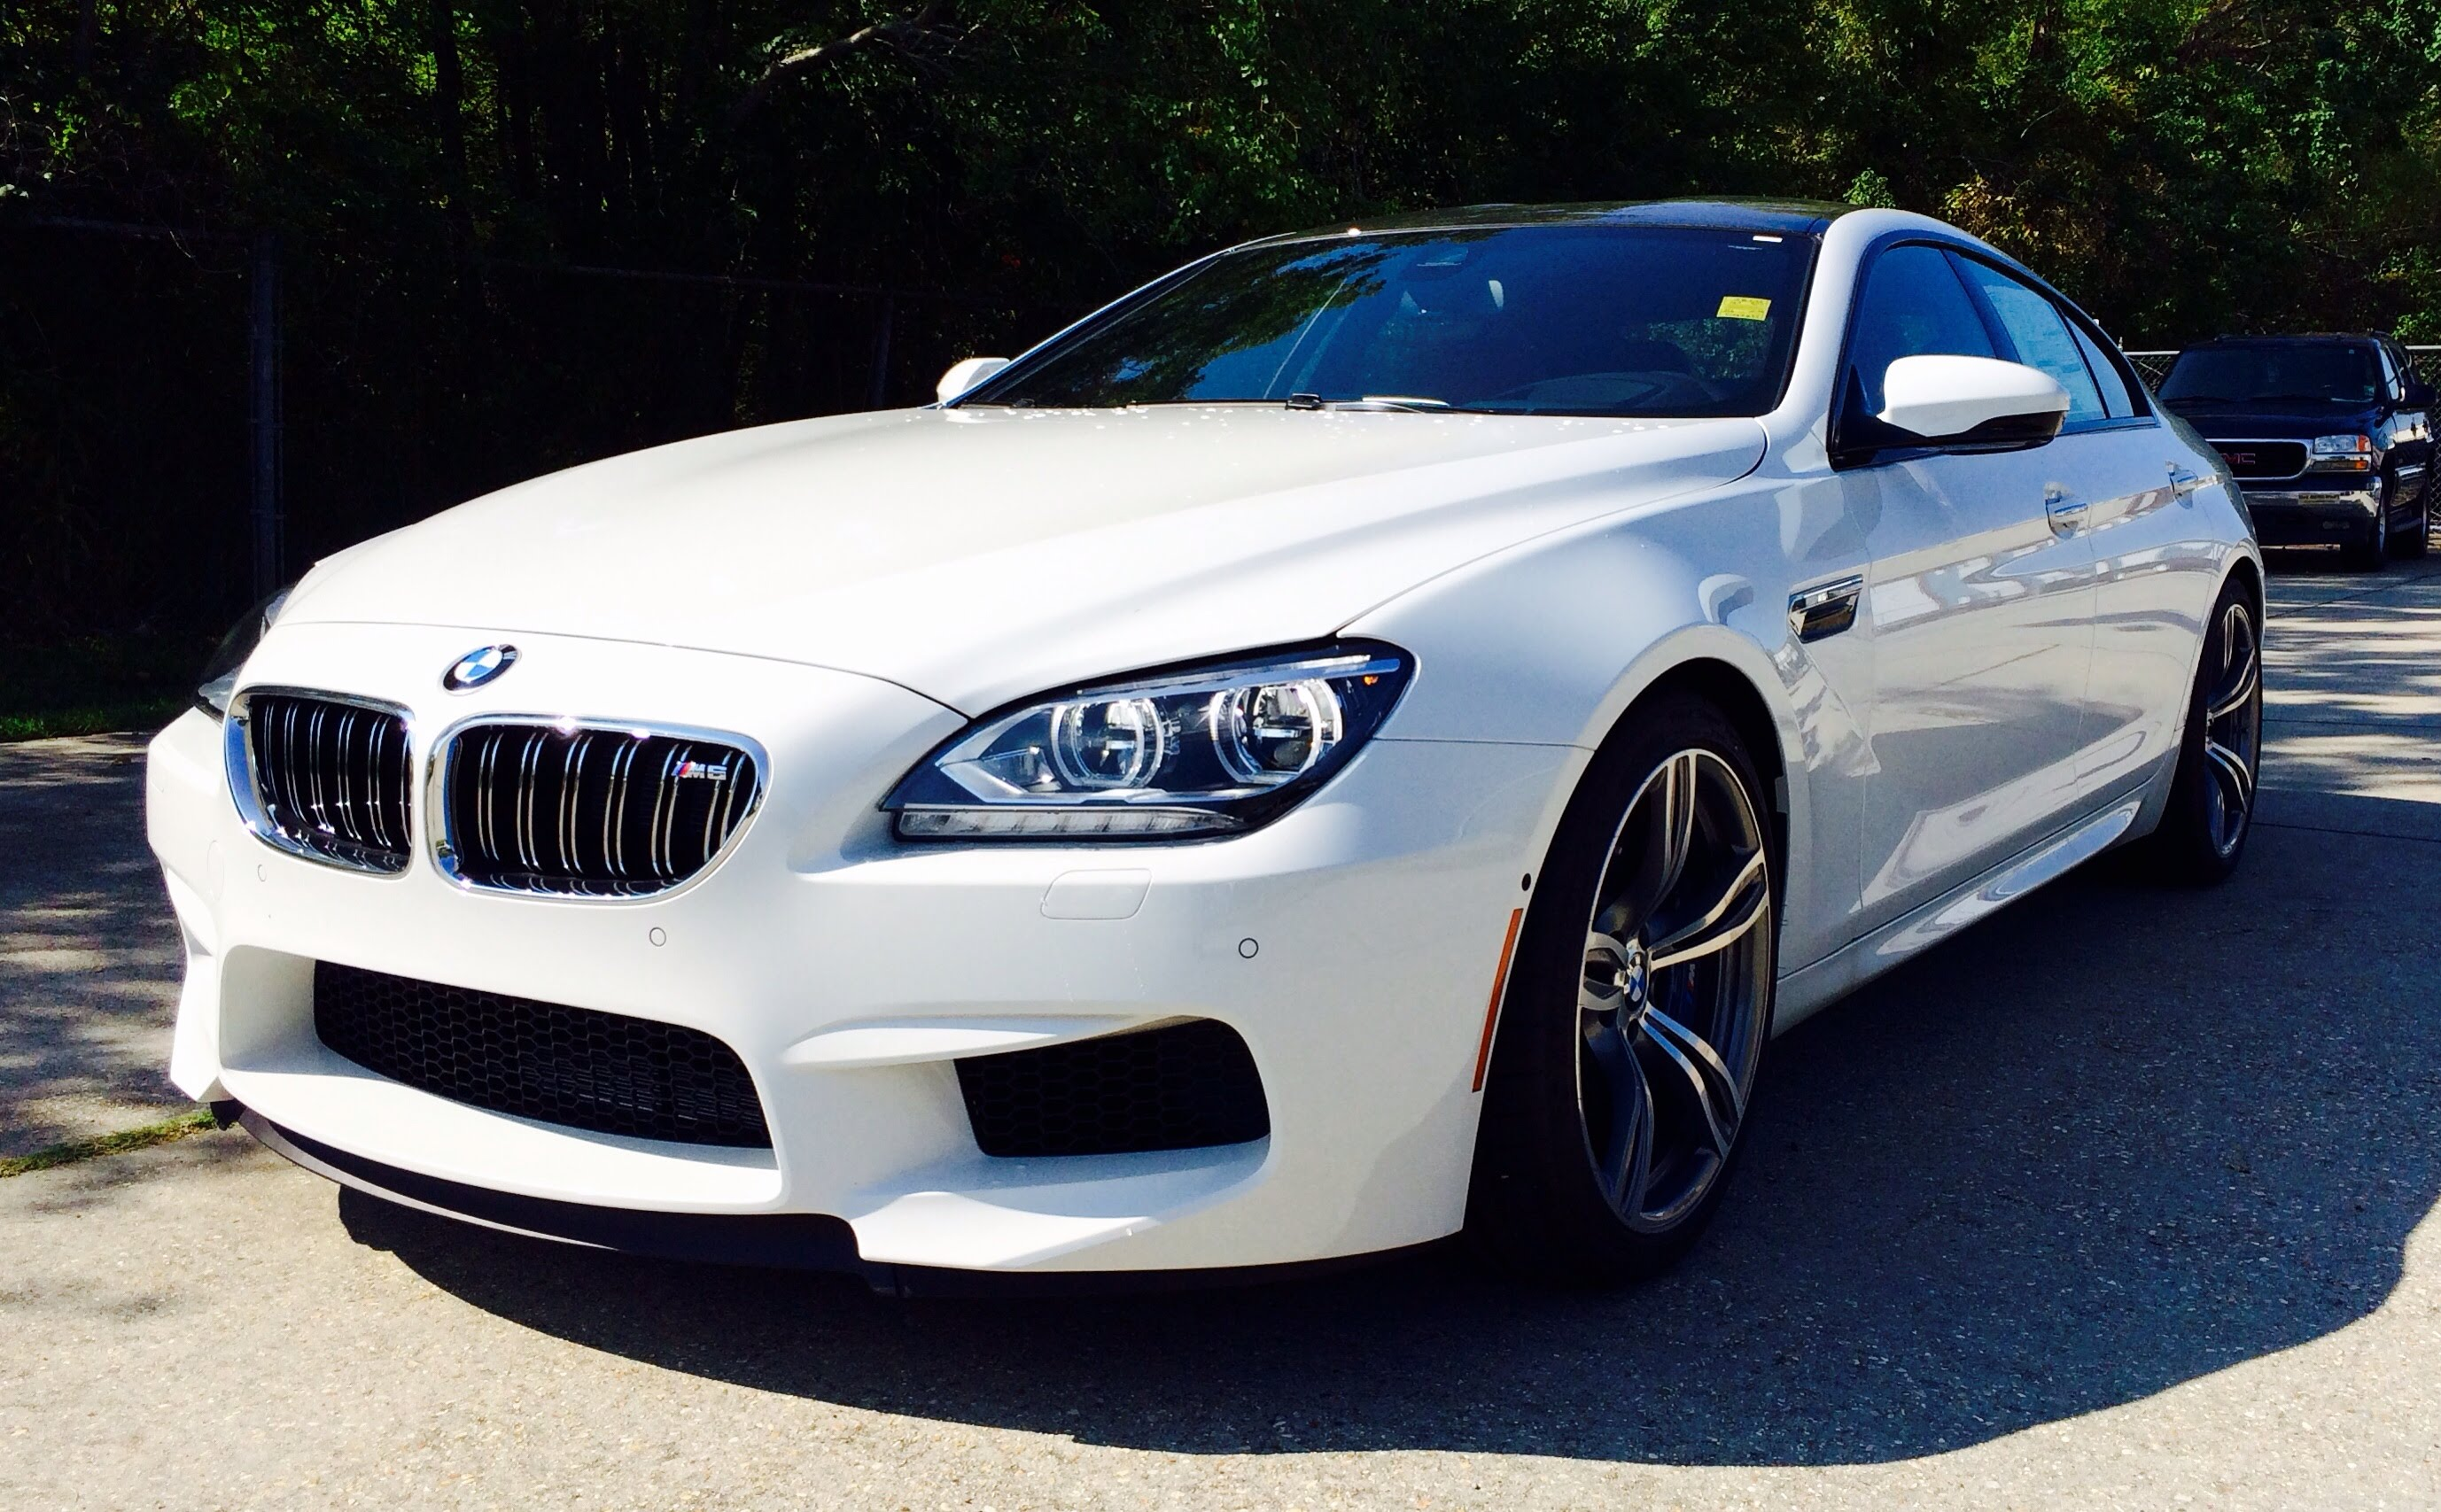 2015 BMW M6GRANCOUPE Car Review Video Florida